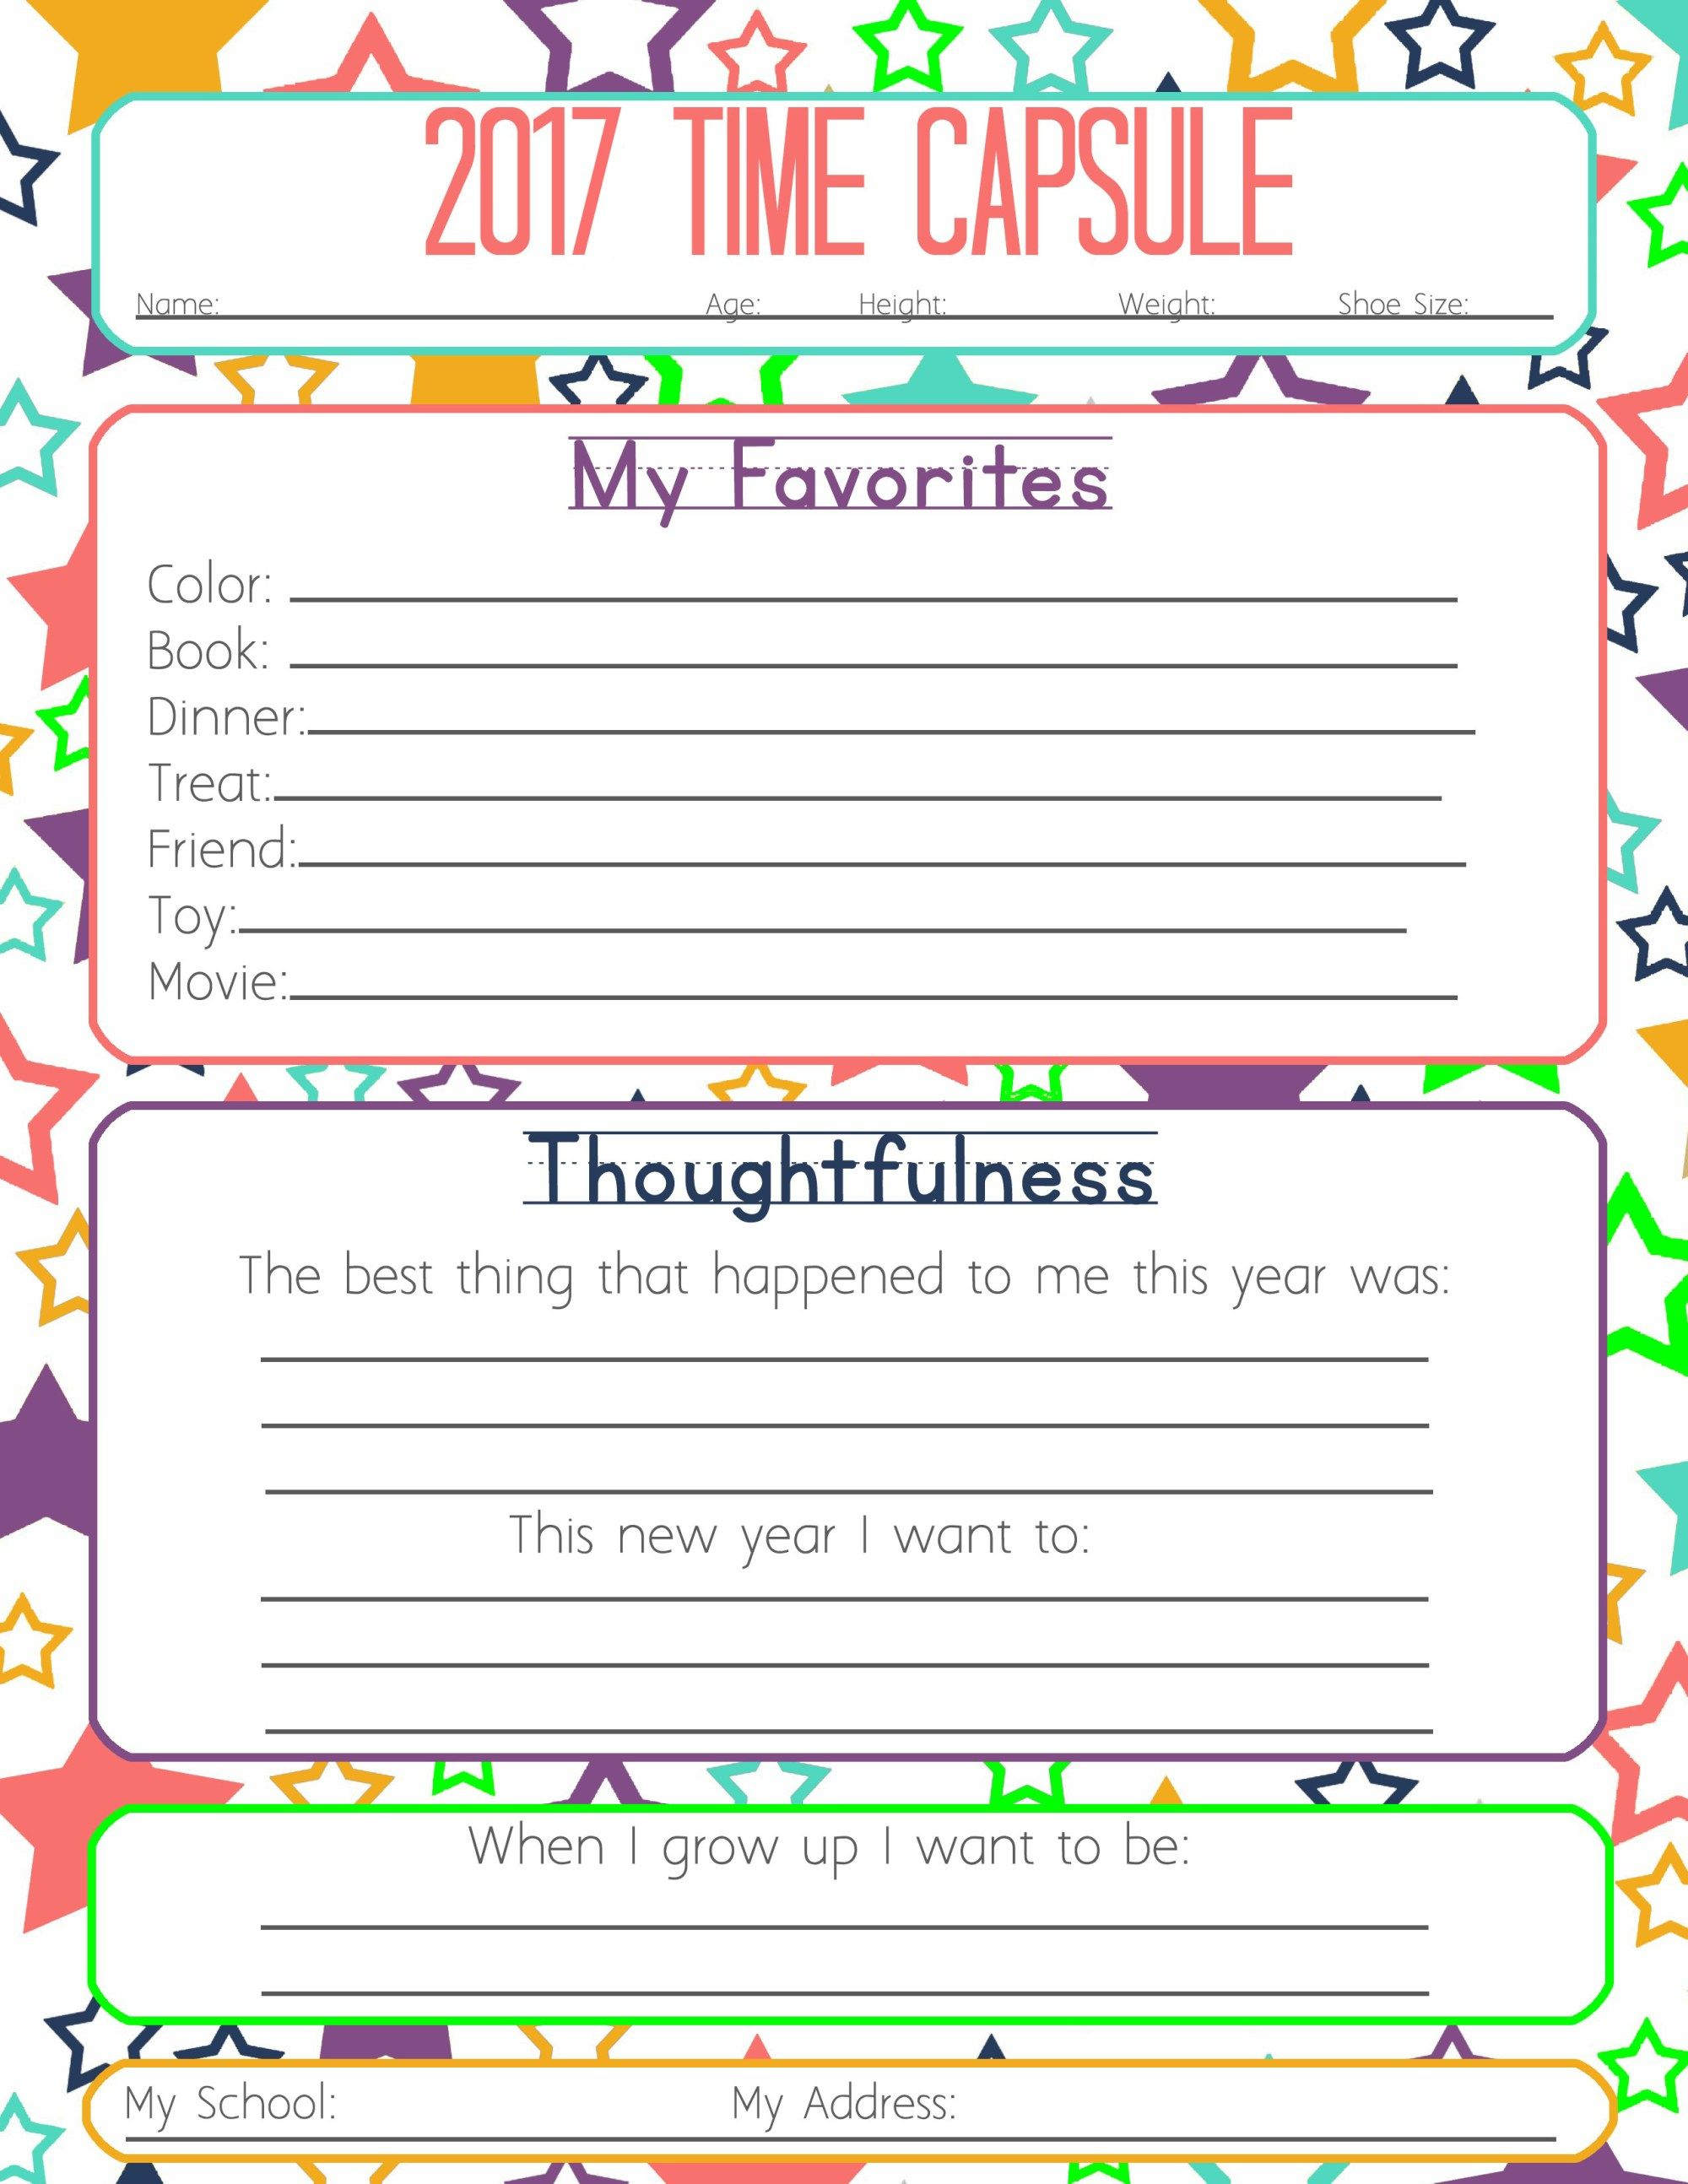 New Years Resolution & Time Capsule Worksheets and Activities for Kids